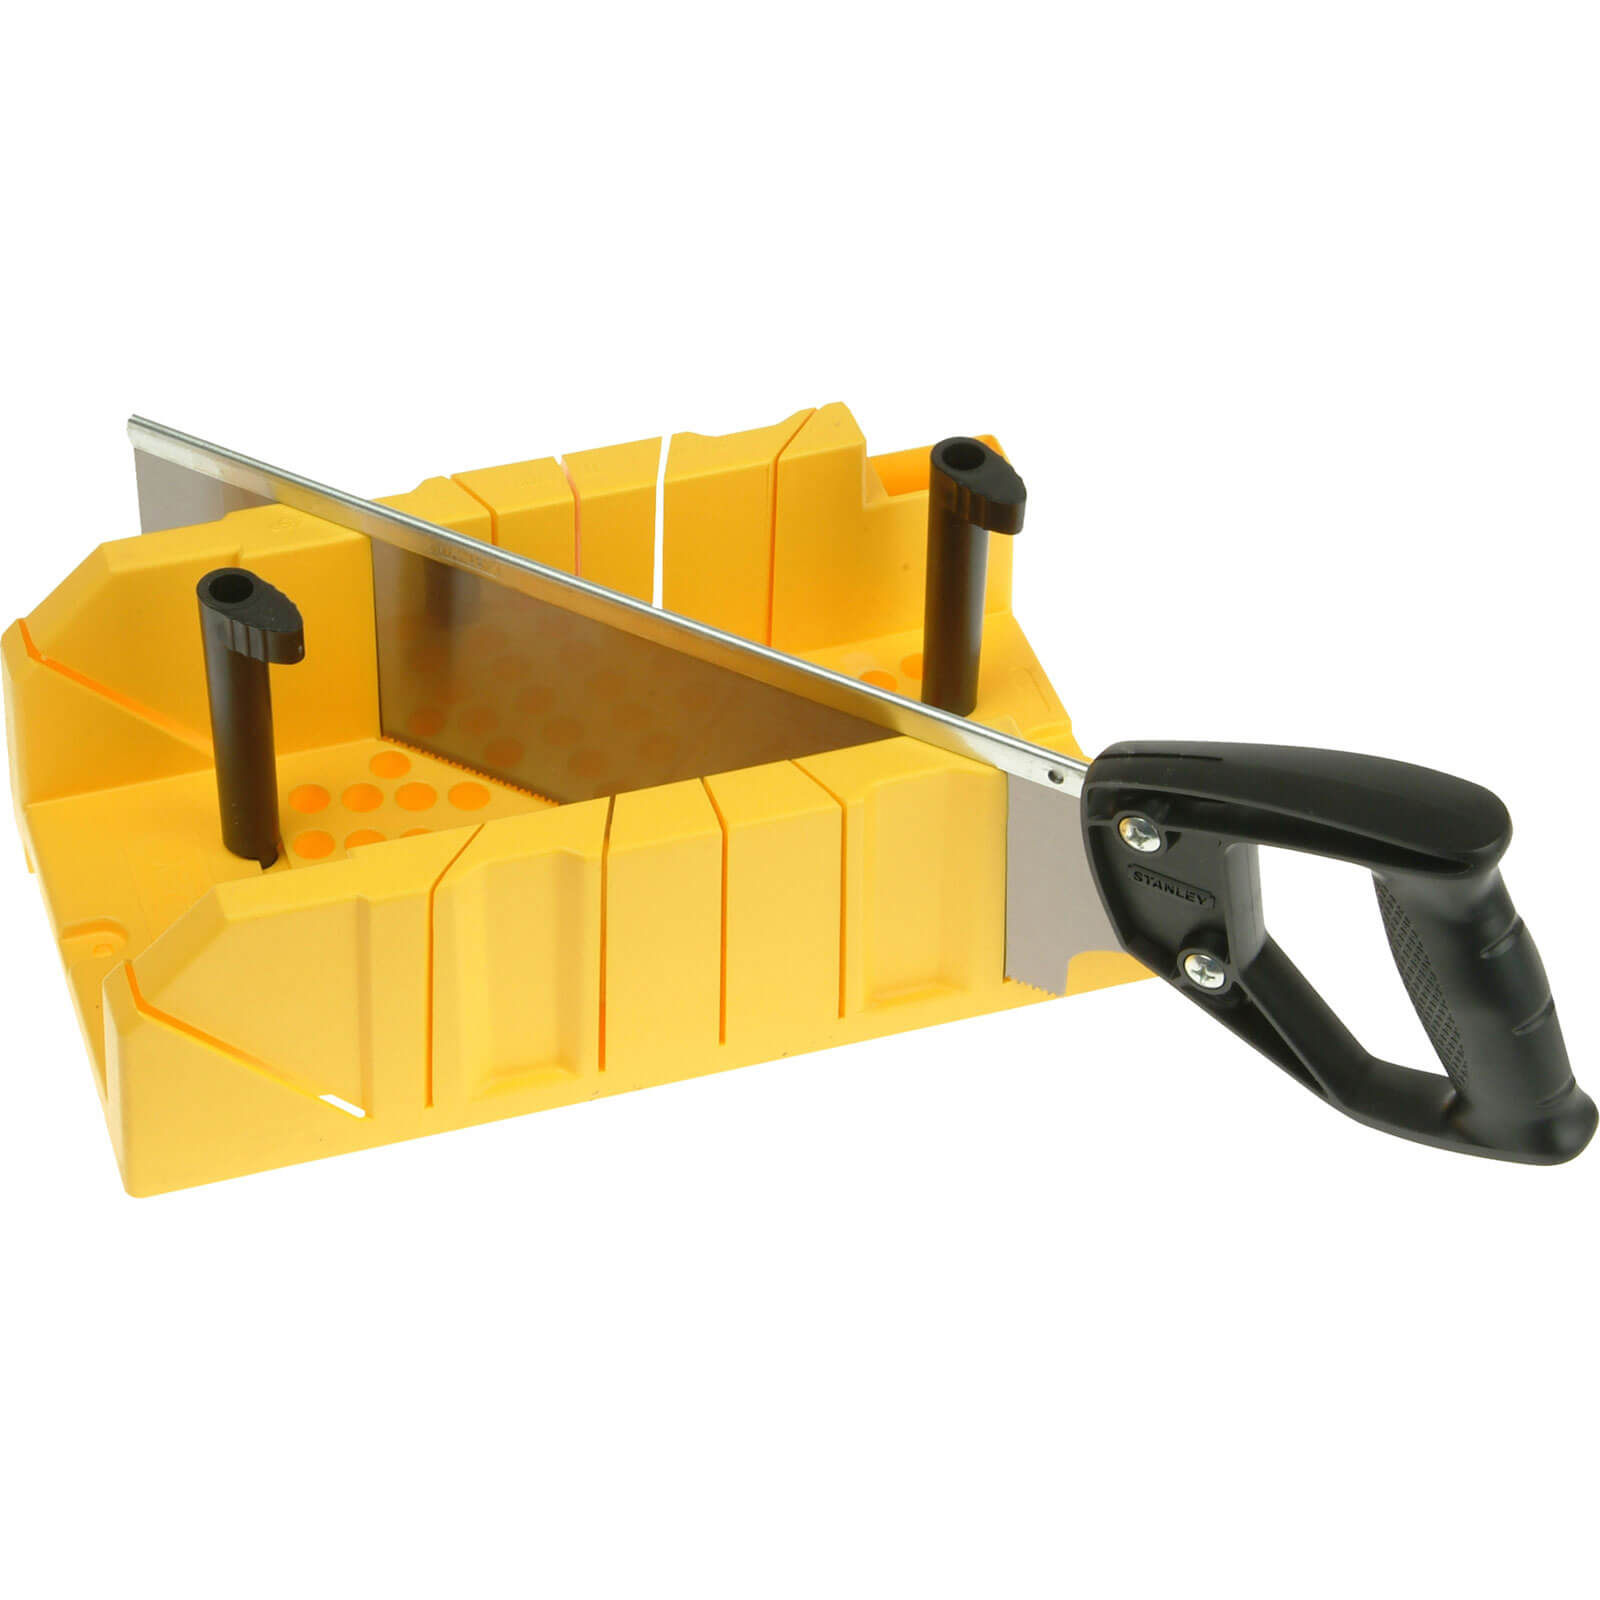 Stanley Clamping Mitre Box & Tenon Saw 310mm